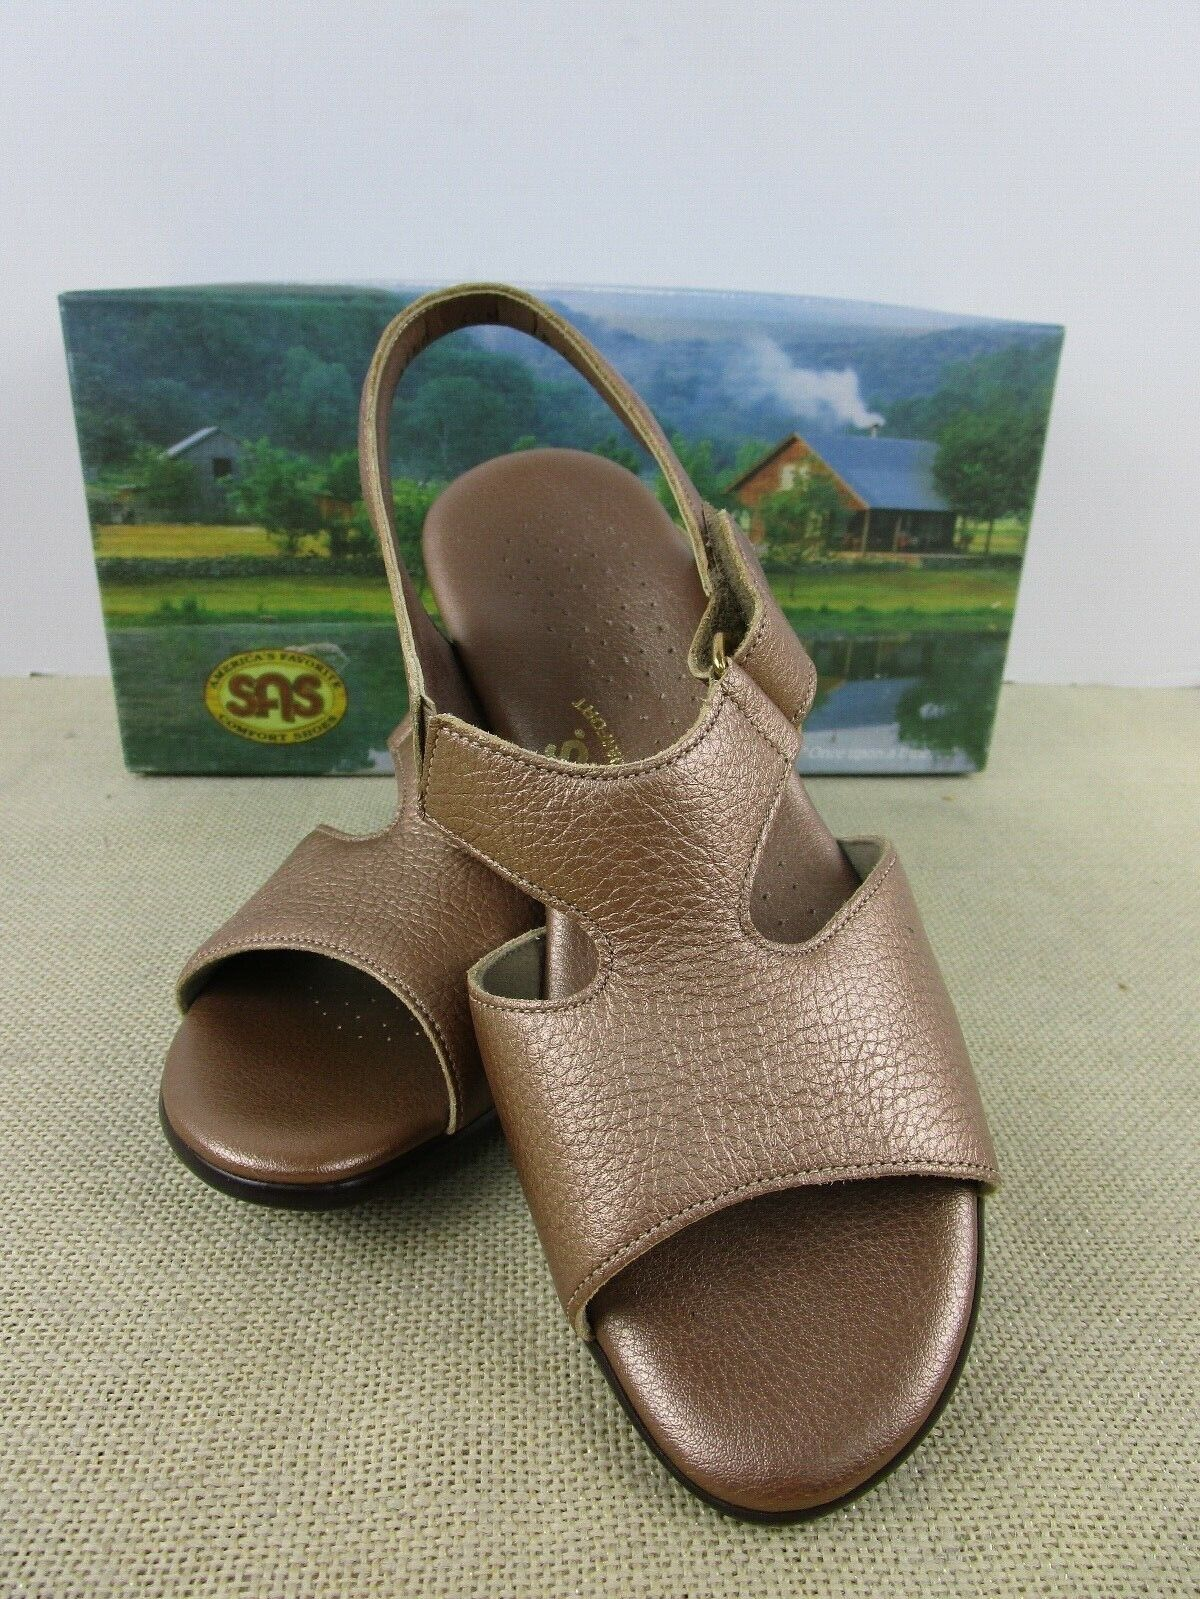 SAS SUNTIMER COPPER LEATHER WOMENS SHOES NEW IN BOX USA MADE